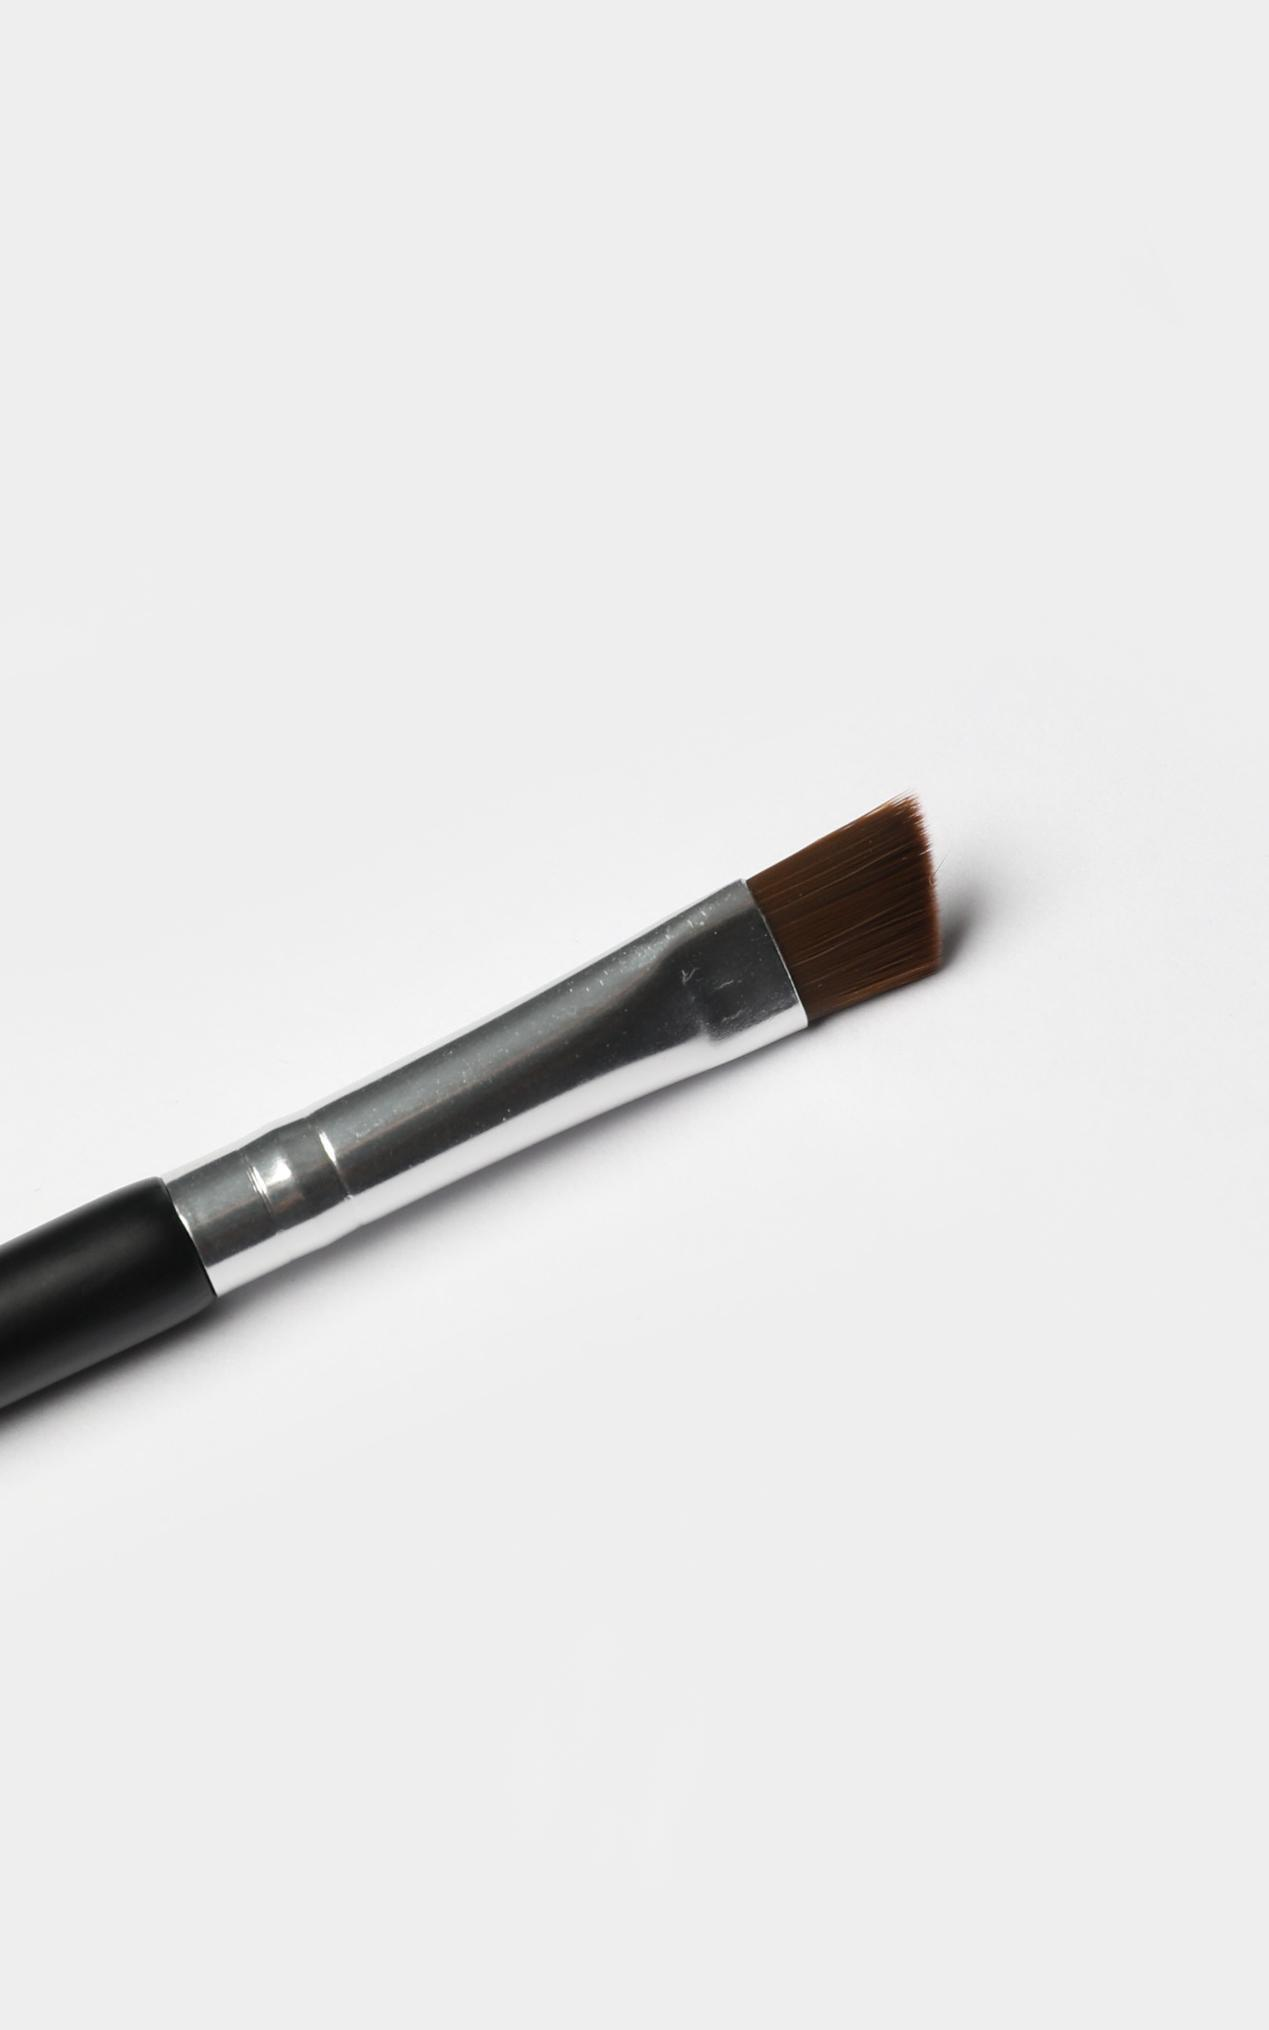 Dual Precision Eyebrow Brush In  Black And Silver, , hi-res image number null